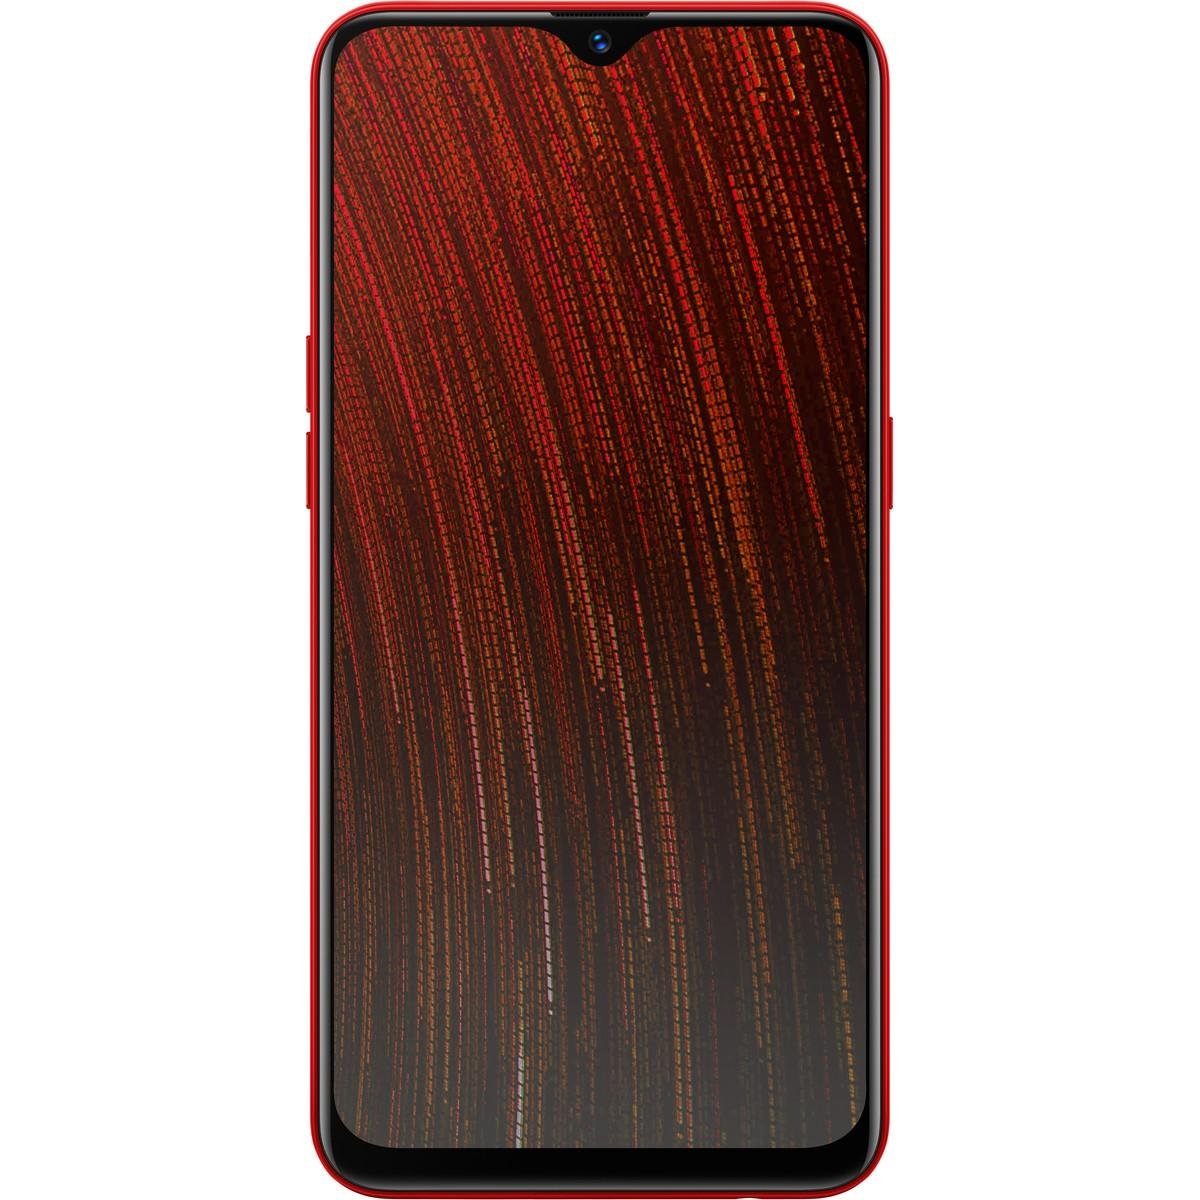 Optus Oppo AX5s Smartphone – Red